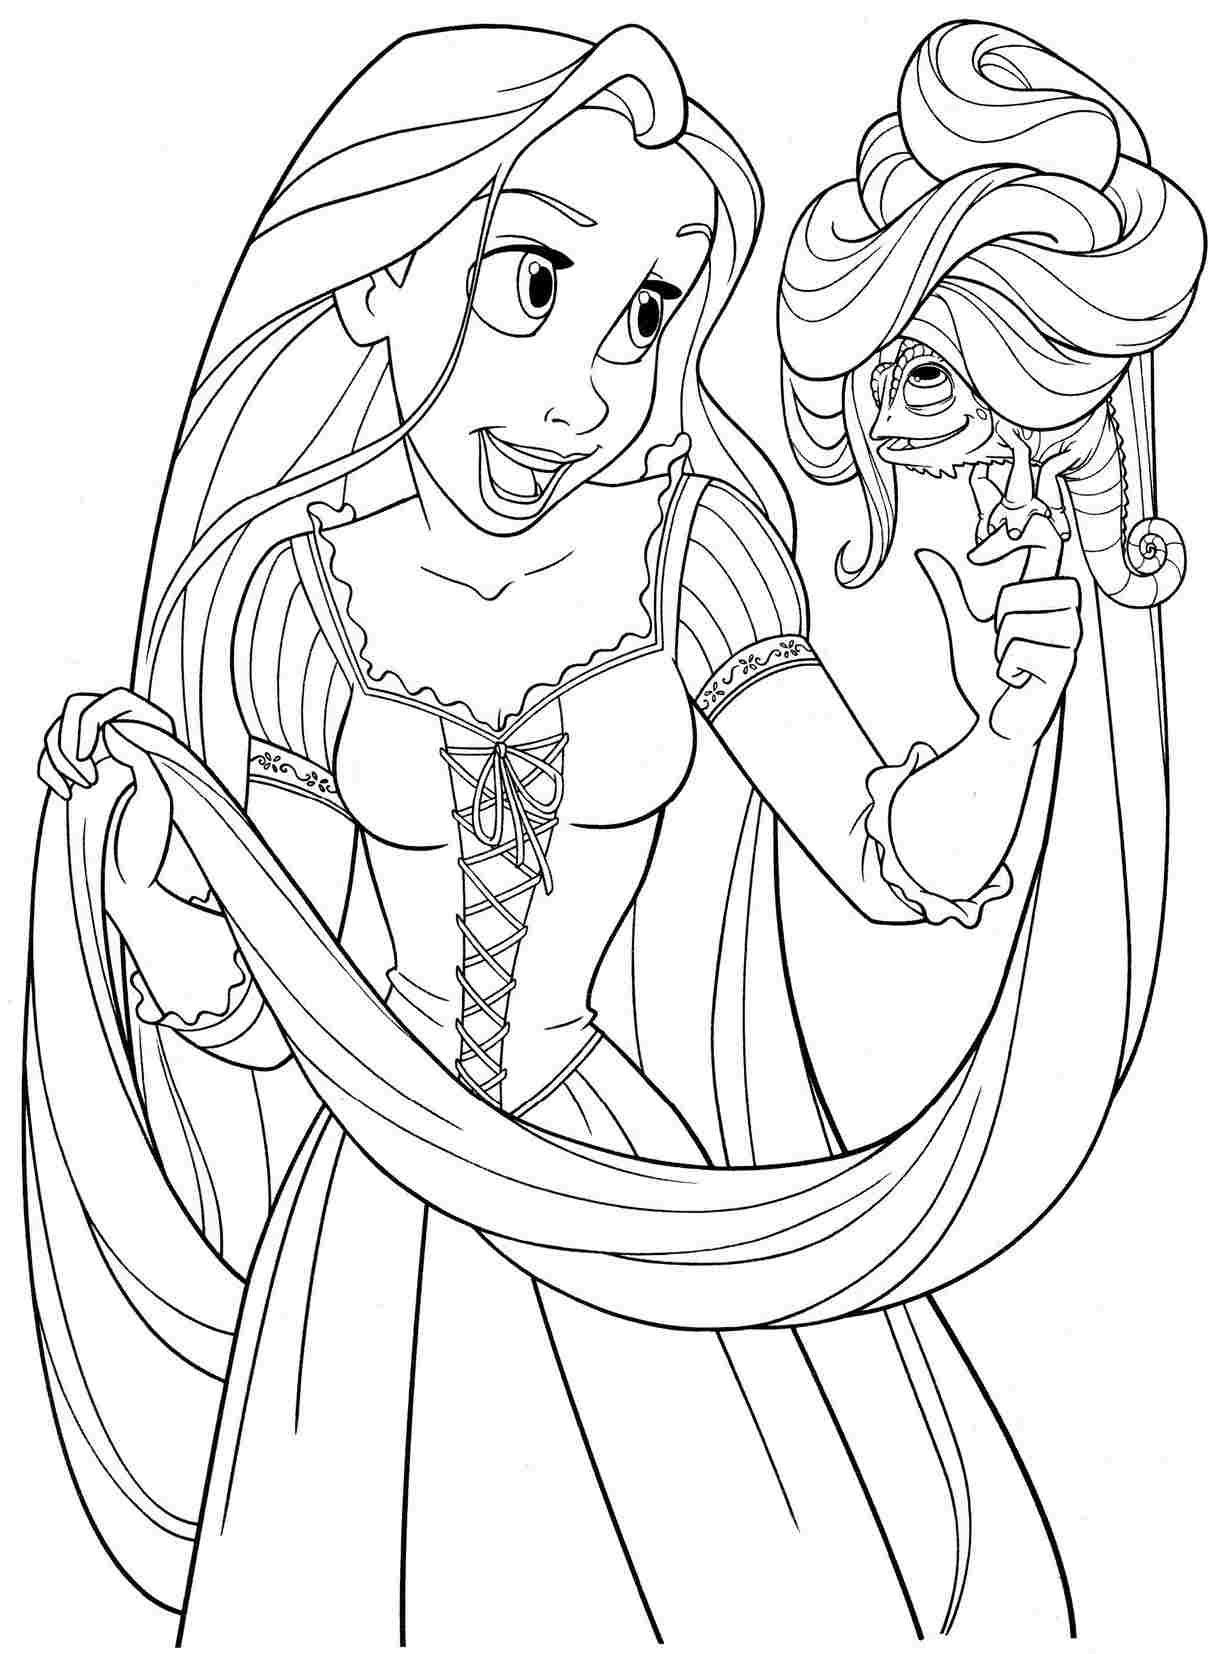 free printable rapunzel coloring pages rapunzel tangled coloring pages at getcoloringscom free rapunzel printable pages free coloring